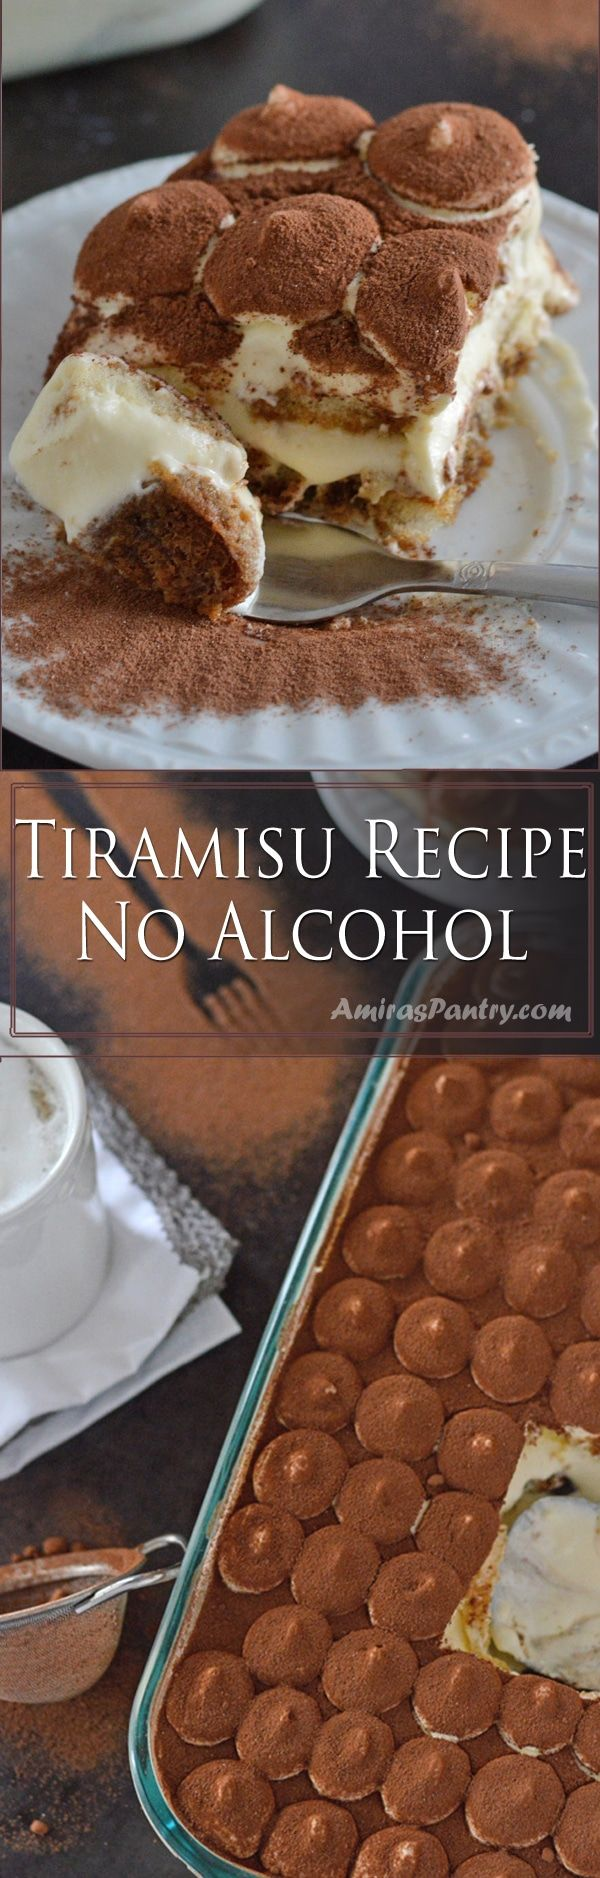 Melt in your mouth, perfectly flavored and miraculously rich tiramisu cake with ladyfingers. This is a tiramisu recipe without alcohol and guess what? no raw egg involved!